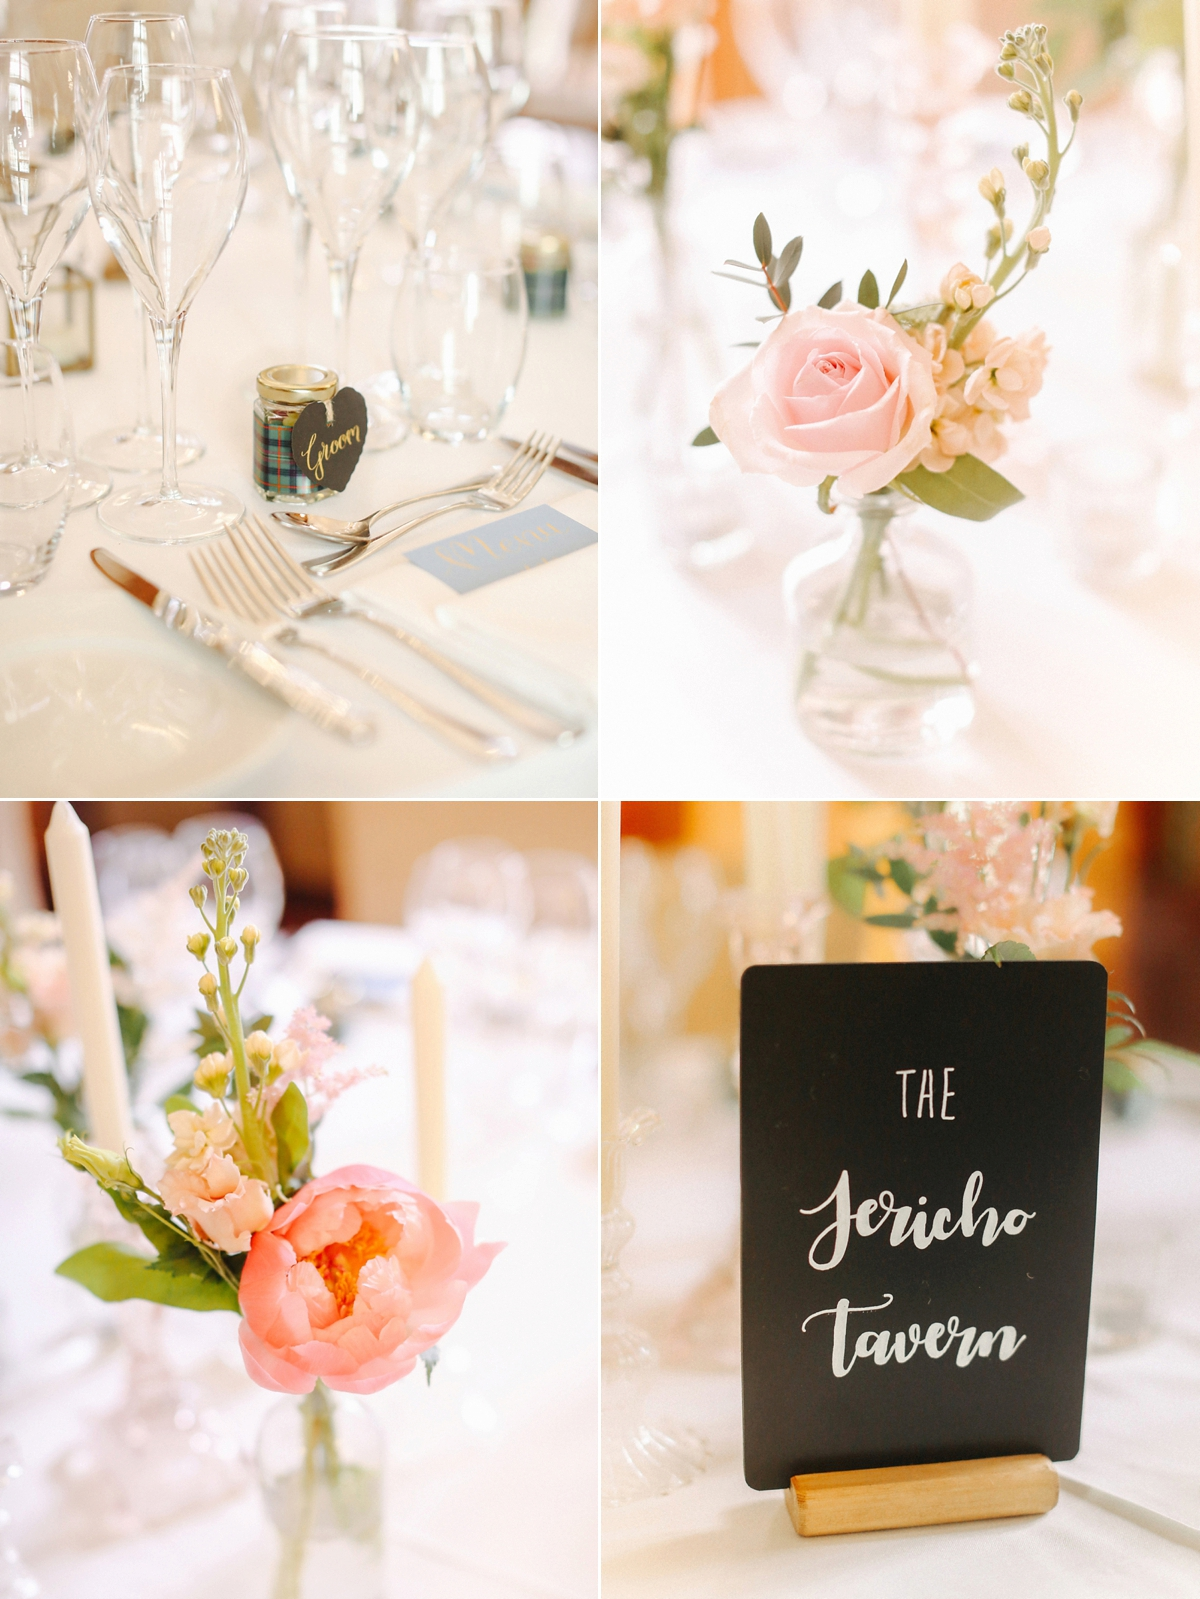 Peach elegant table decor - A Caroline Castigliano Gown for a Chic and Classic Manor House Wedding in Shades of Peach